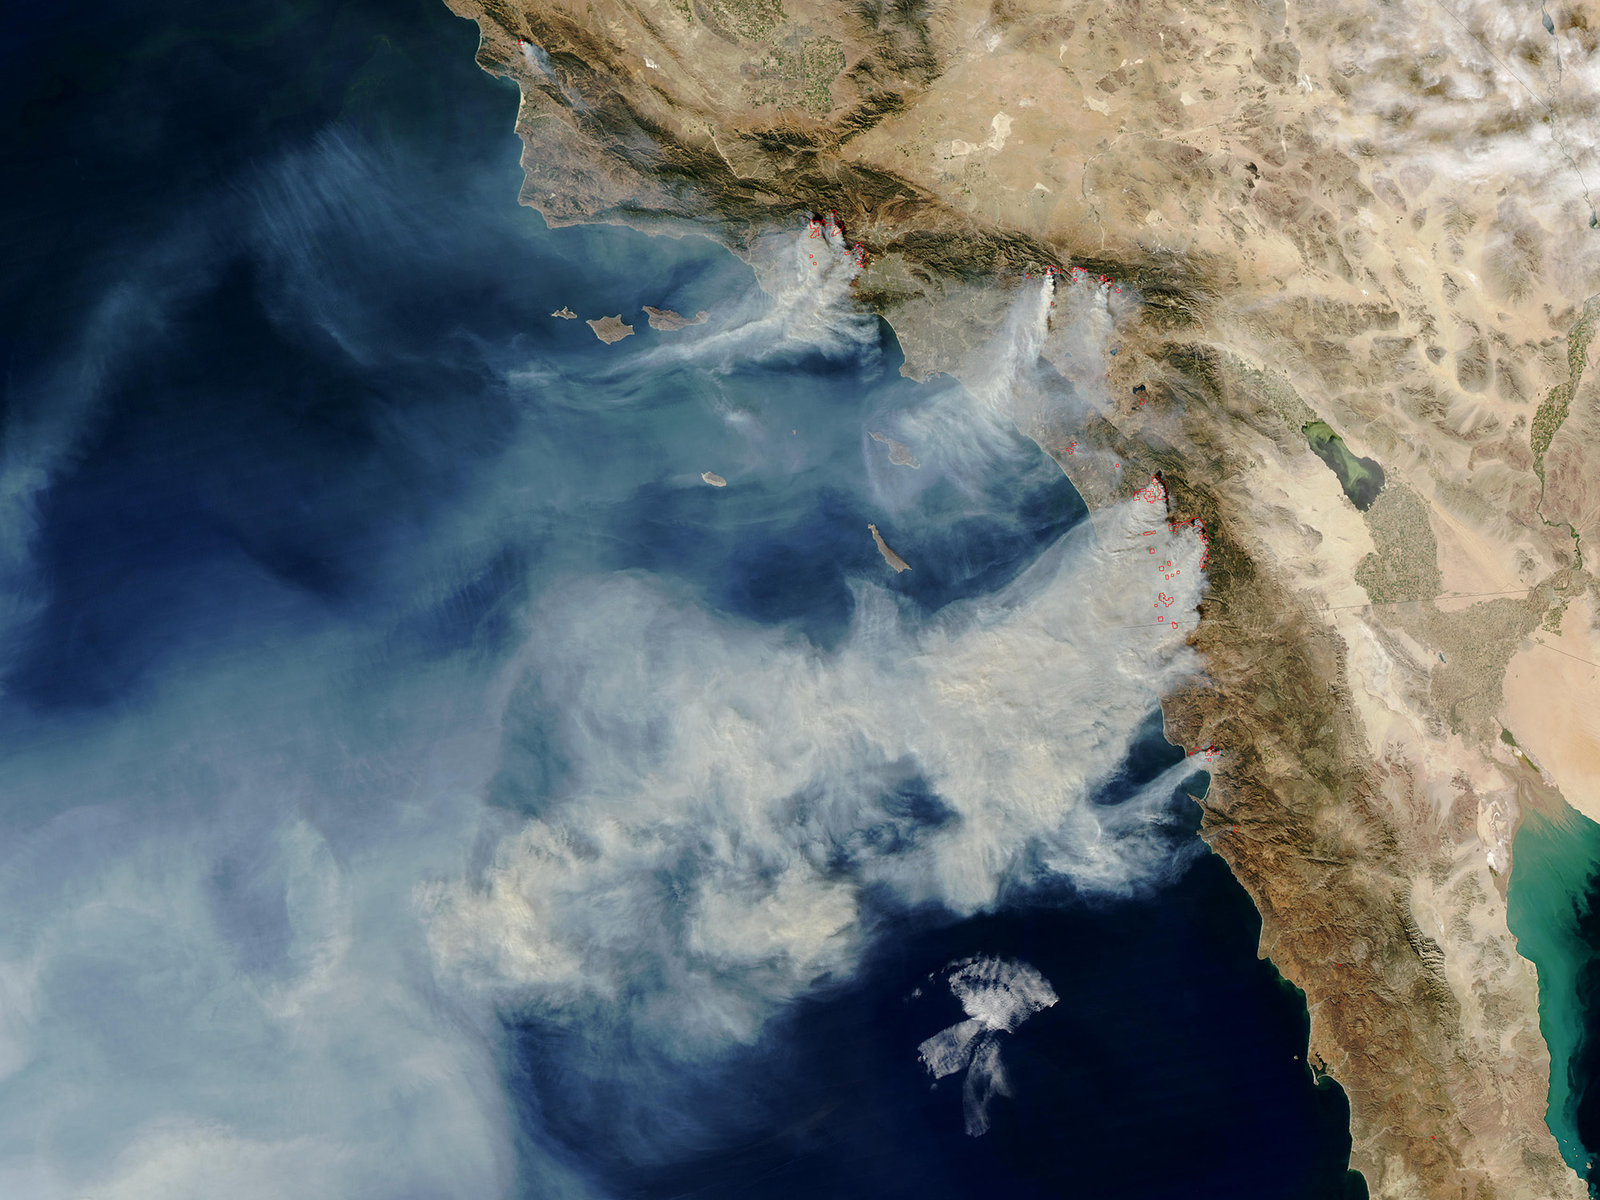 Ten wildfires burn over 200,000 acres in Southern California, Oct 2003 - MODIS image, NASA